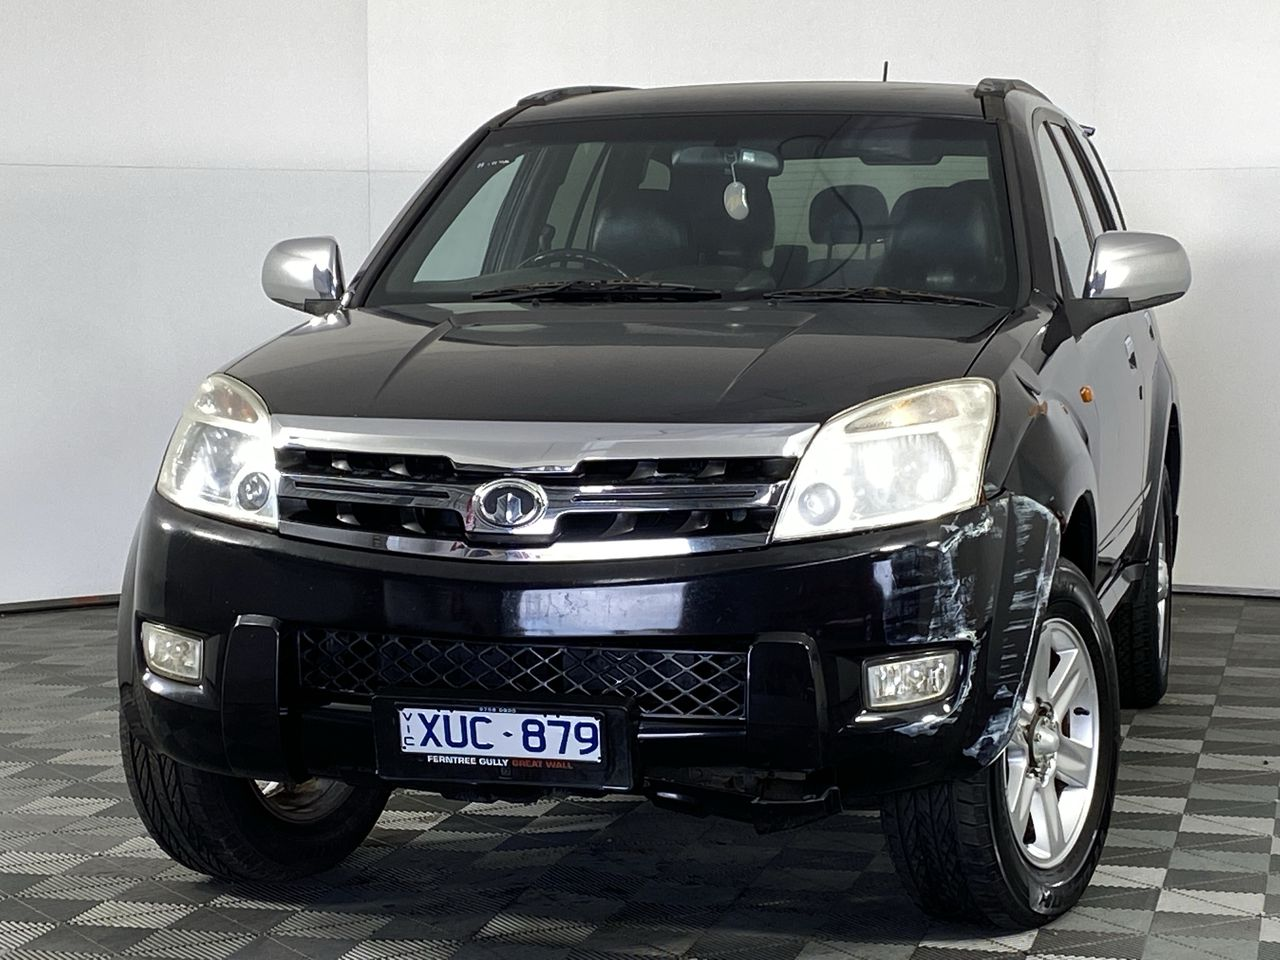 2010 Great Wall X240 4X4 Manual Wagon